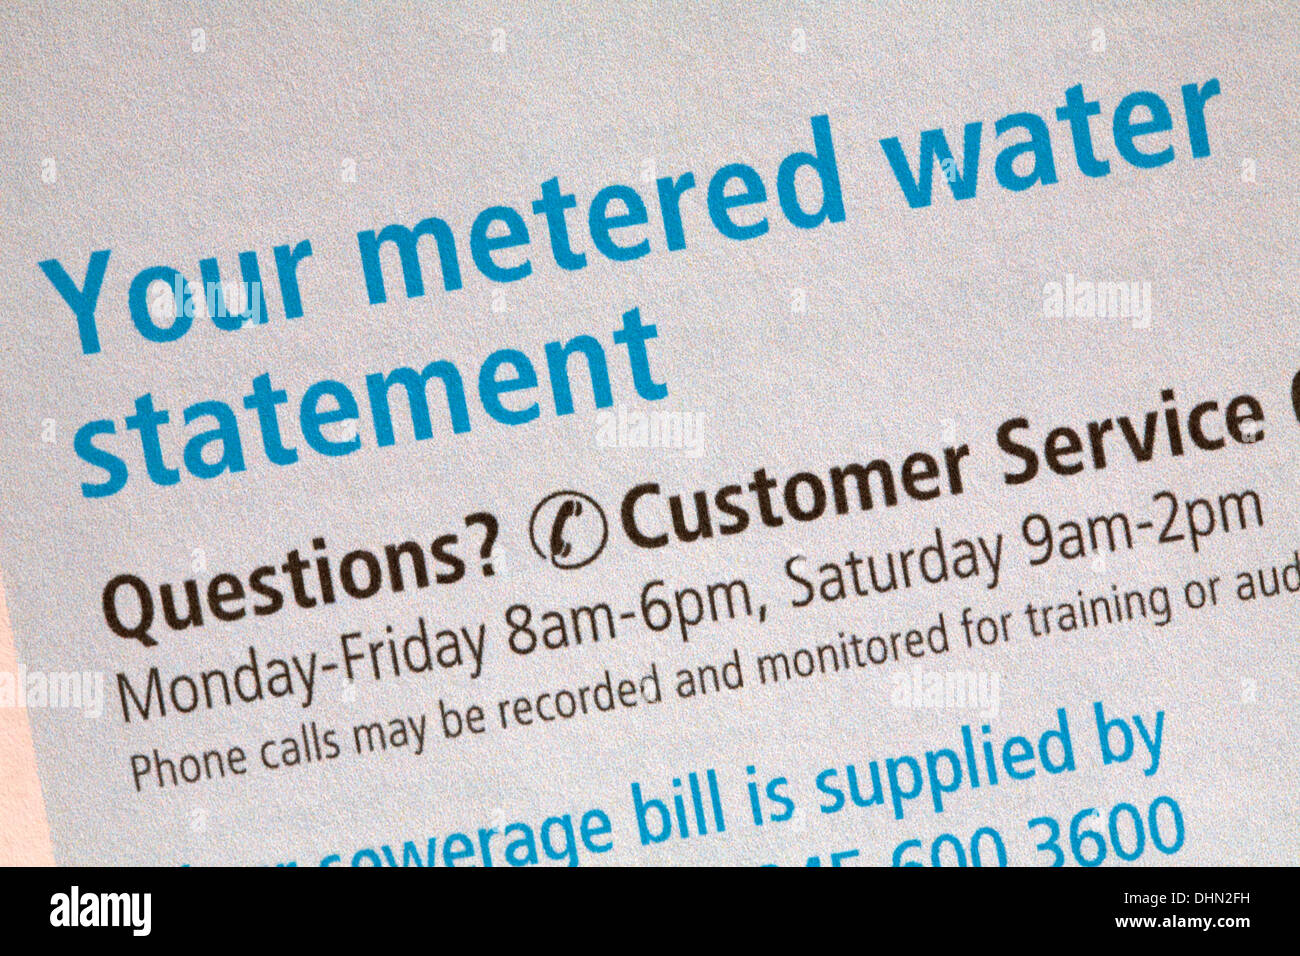 Your metered water statement information on water bill from sembcorp bournemouth water - Stock Image